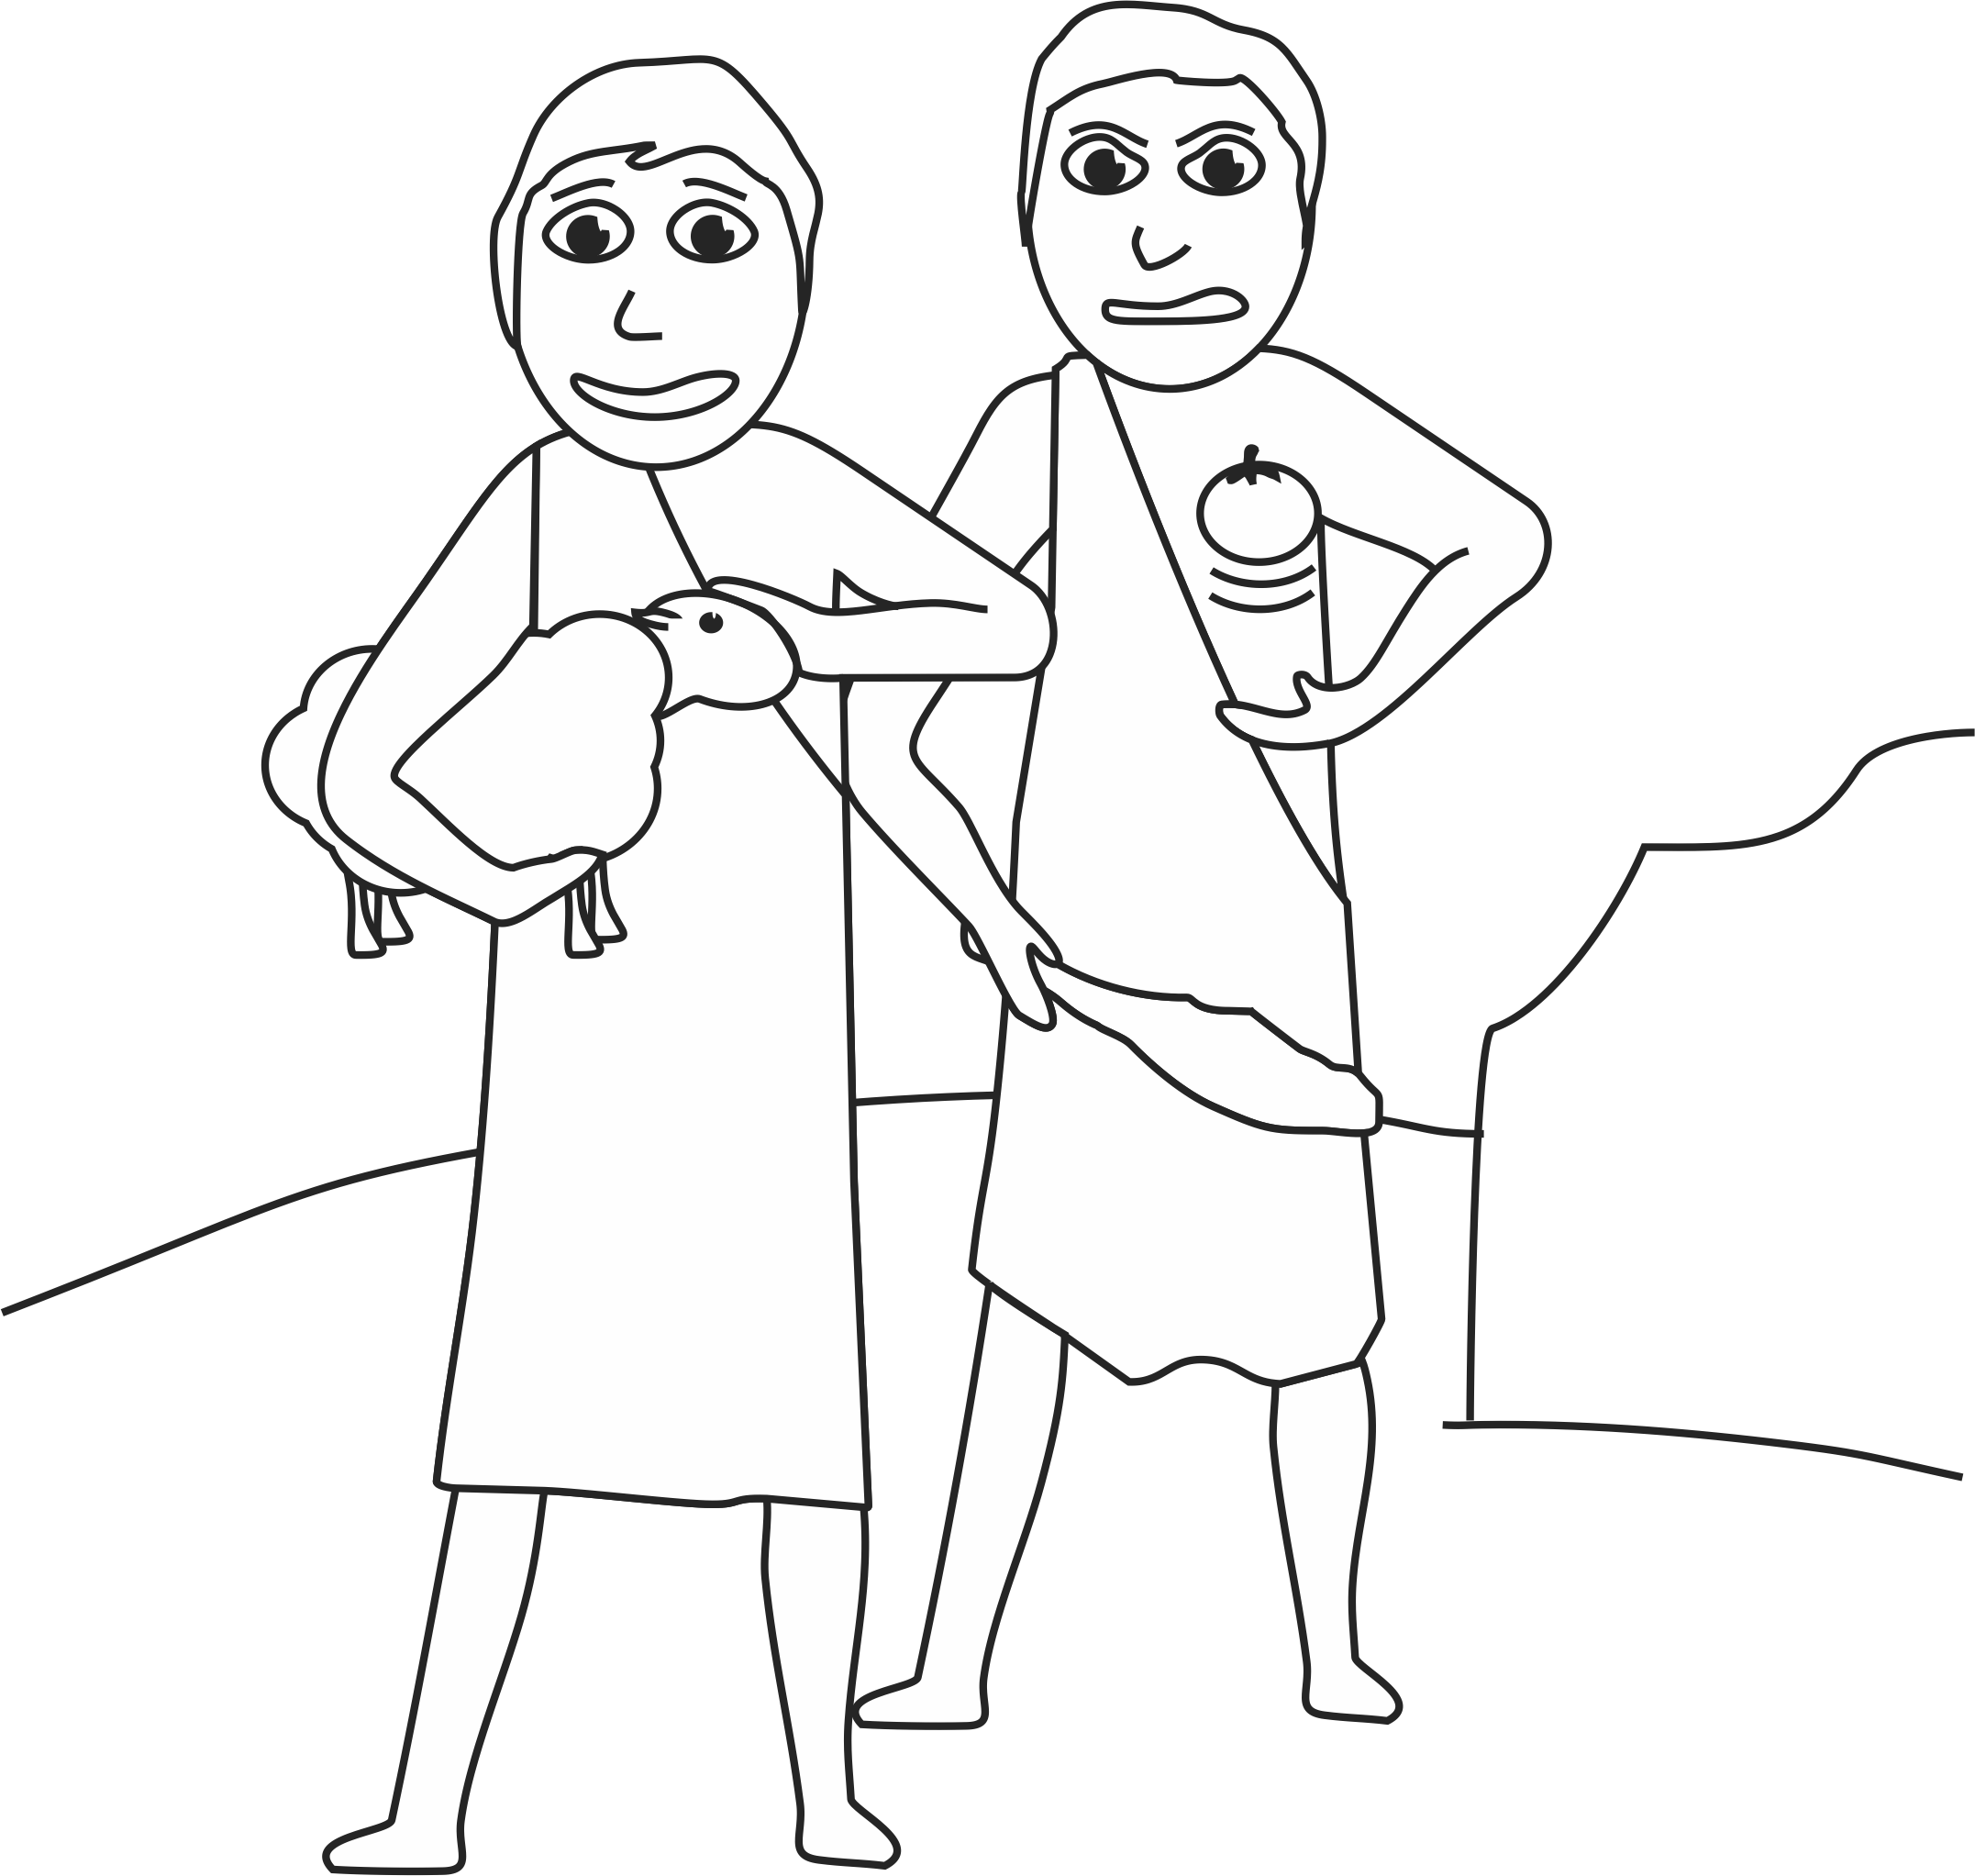 cain and abel coloring pages - photo#11